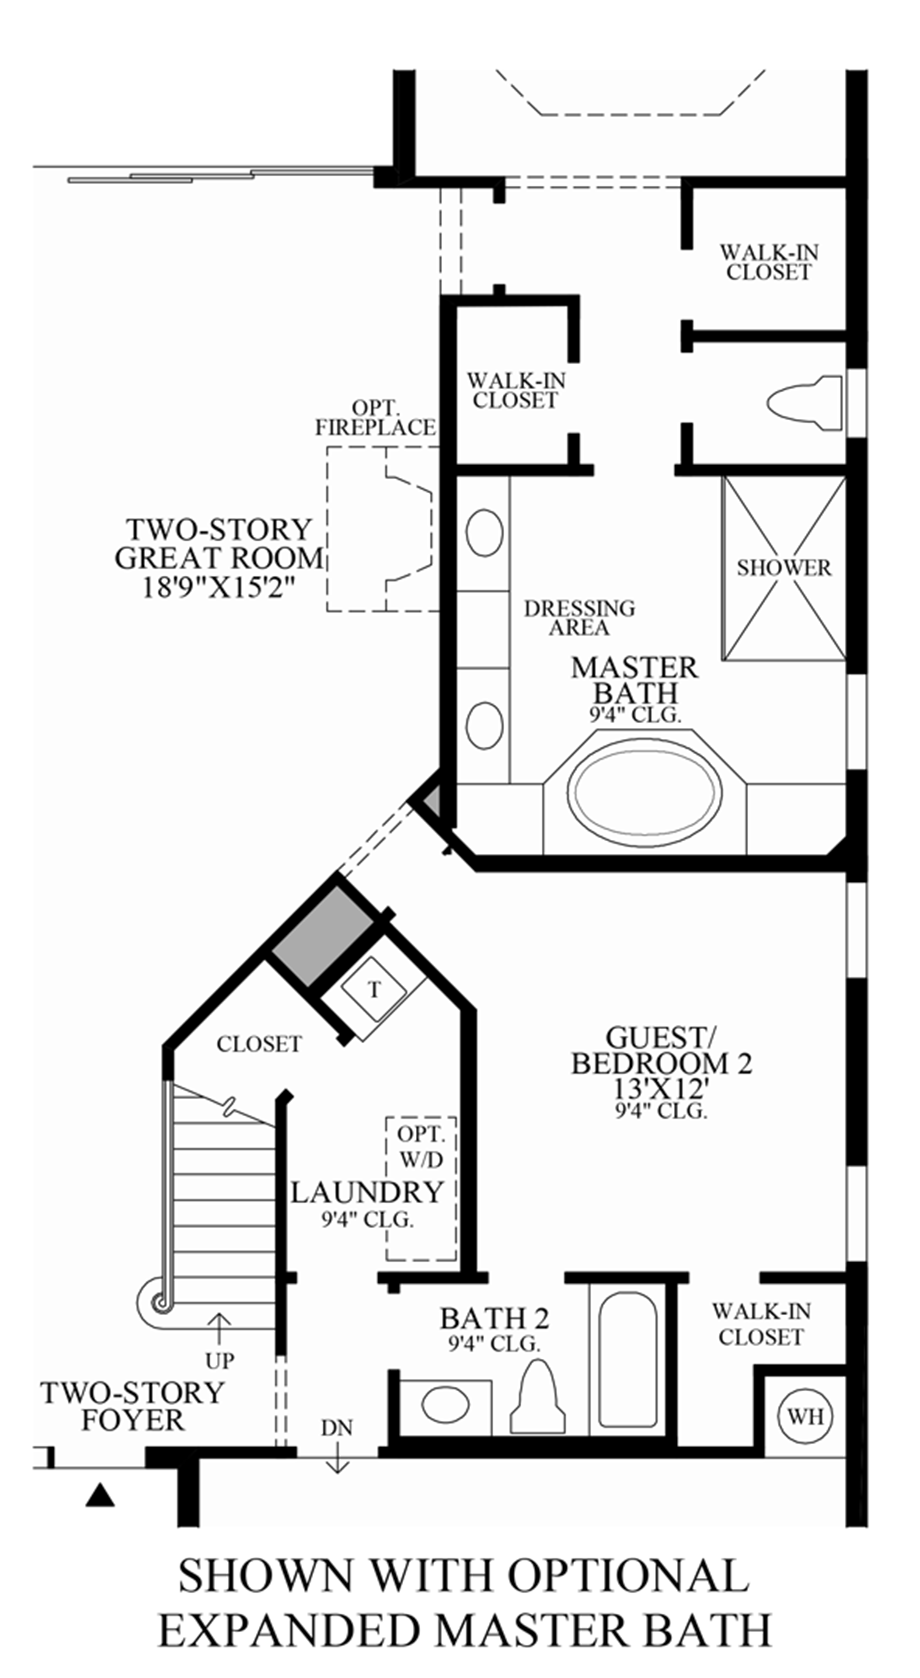 Optional Expanded Master Bath Floor Plan